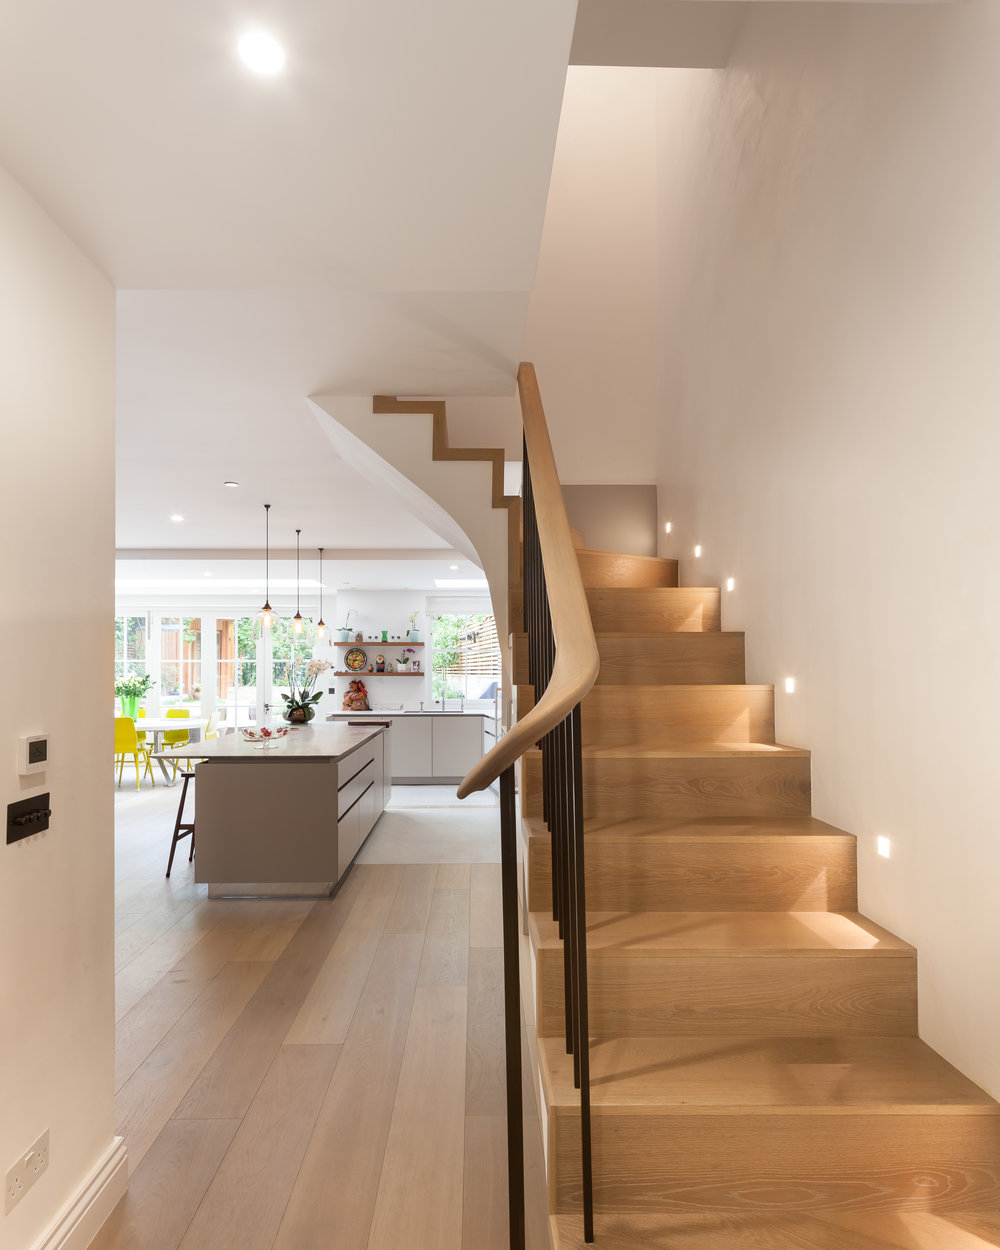 John Foat Architects - Architect Brighton, Notting Hill 6